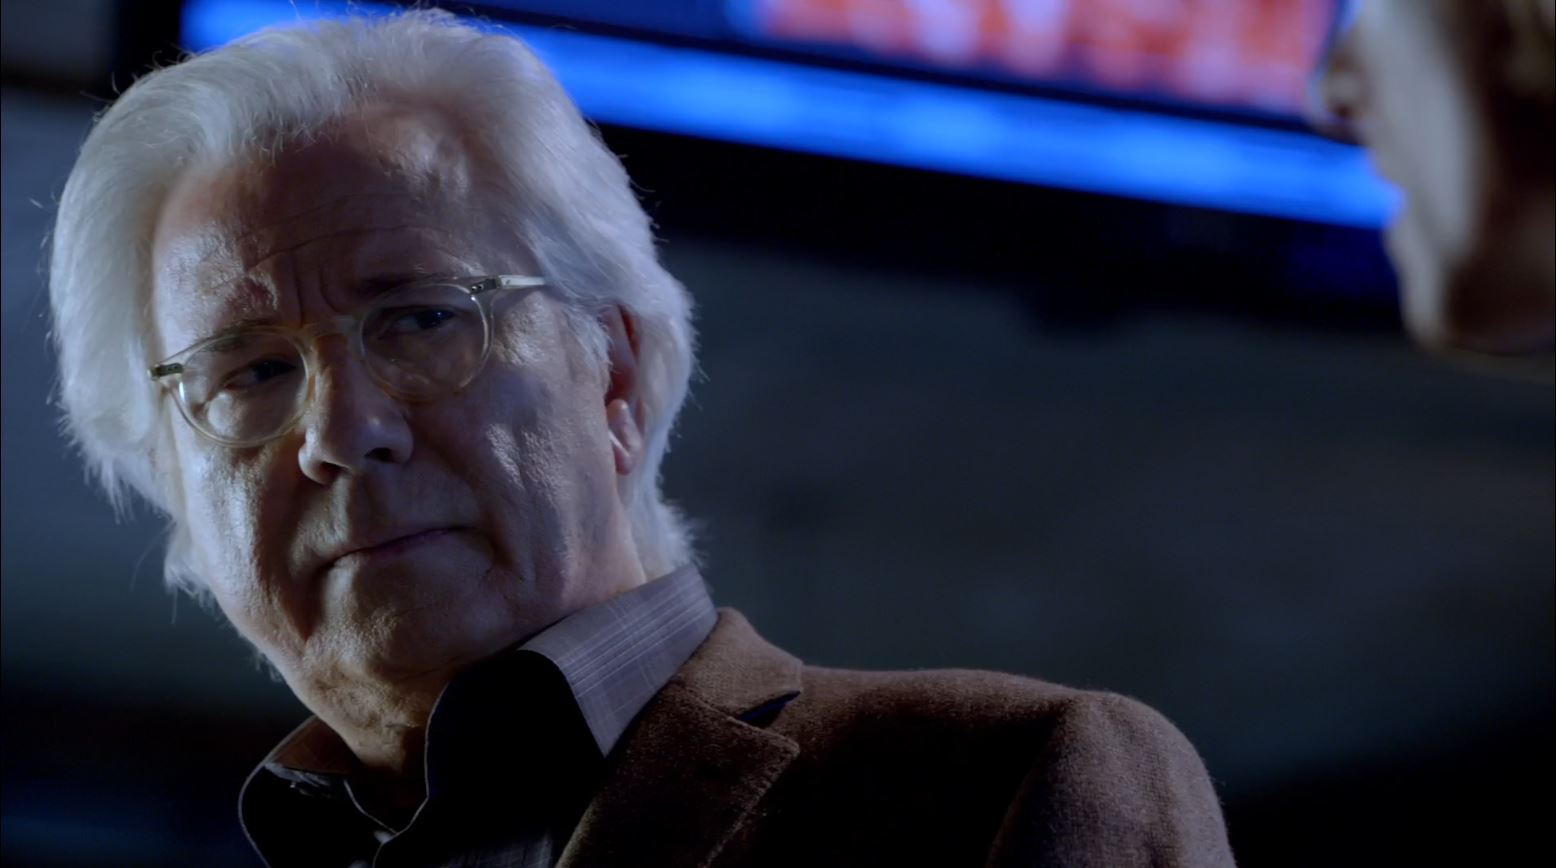 Almost Human - Unbound - John Larroquette as Dr. Nigel Vaughn